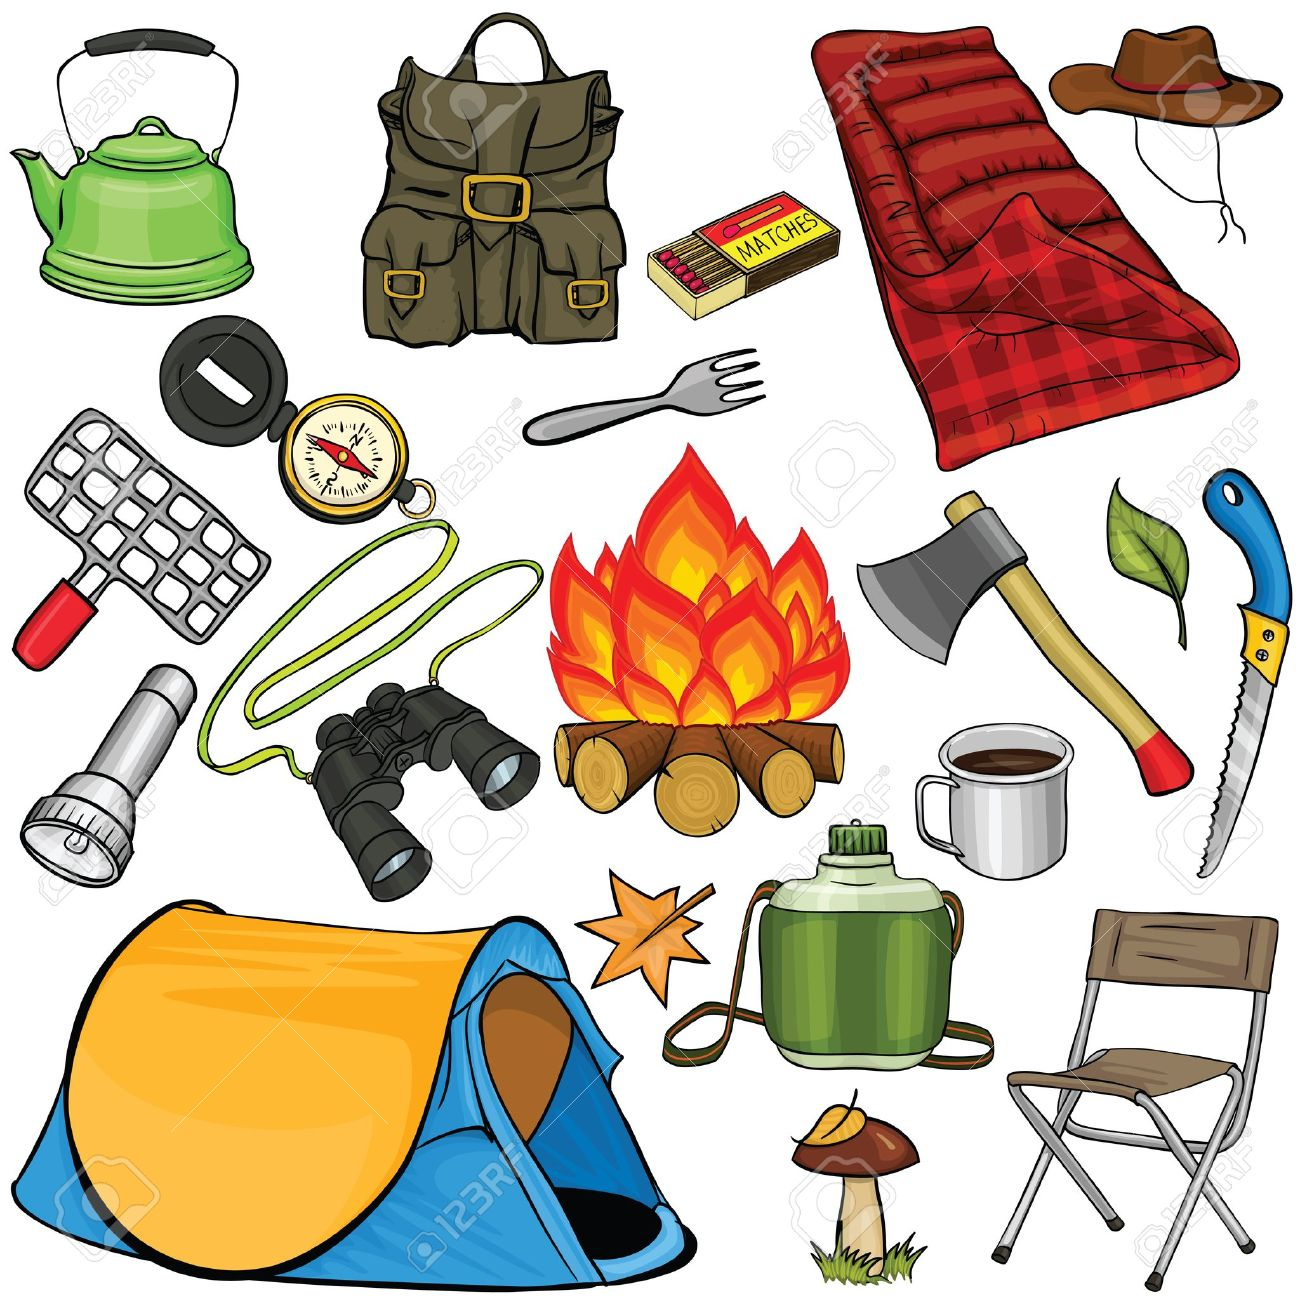 Outdoor clipart camping gear And of Set style jpg